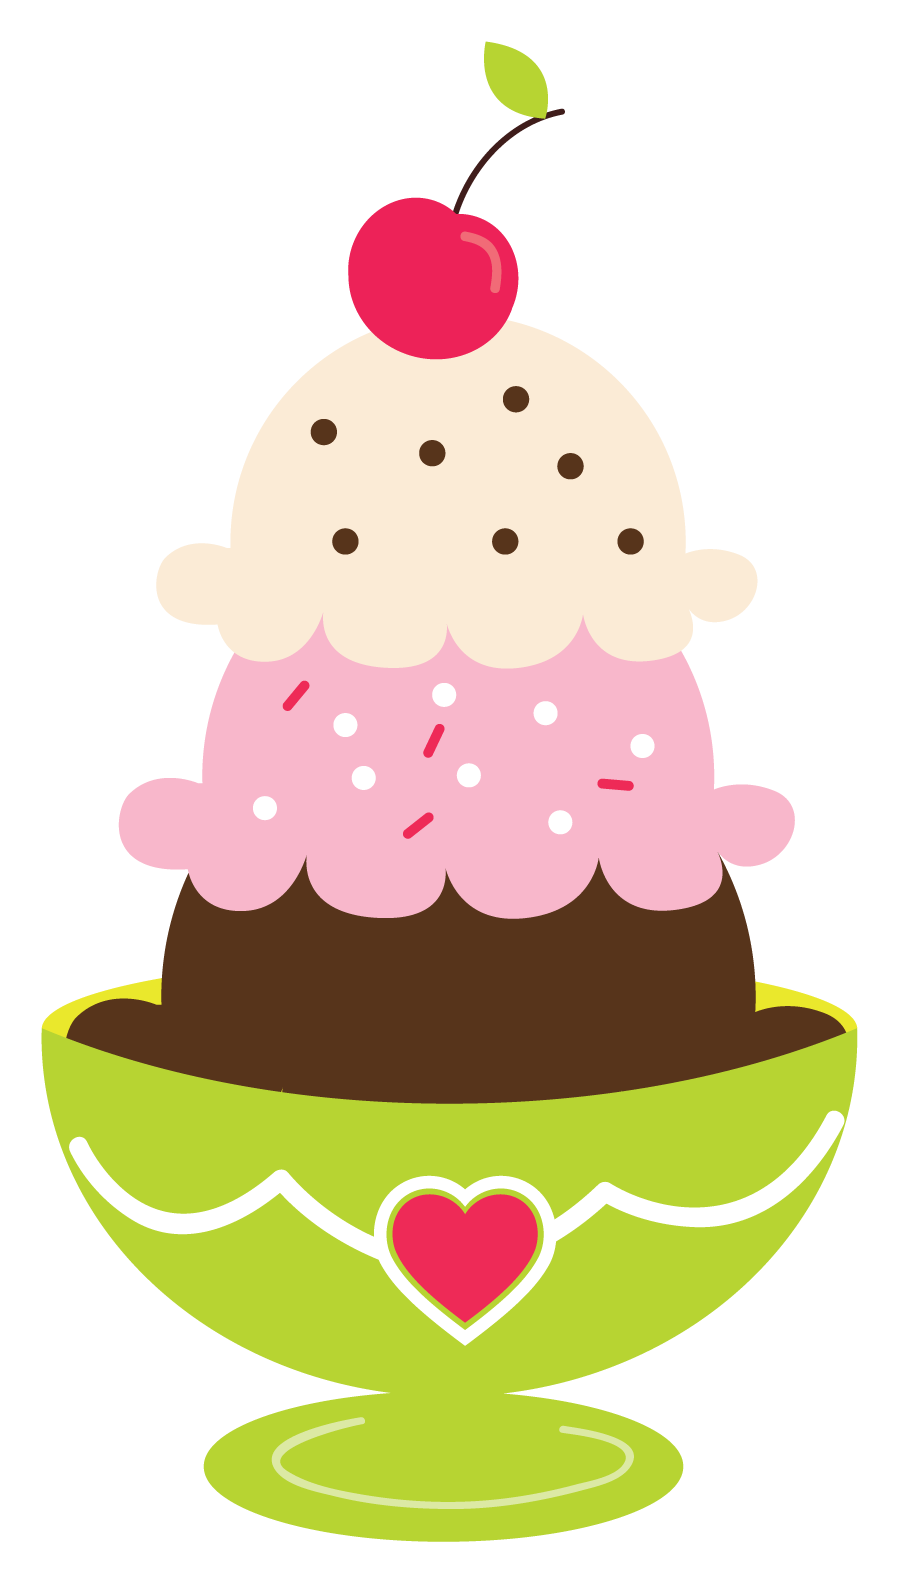 Ice Cream Sundae Clipart.